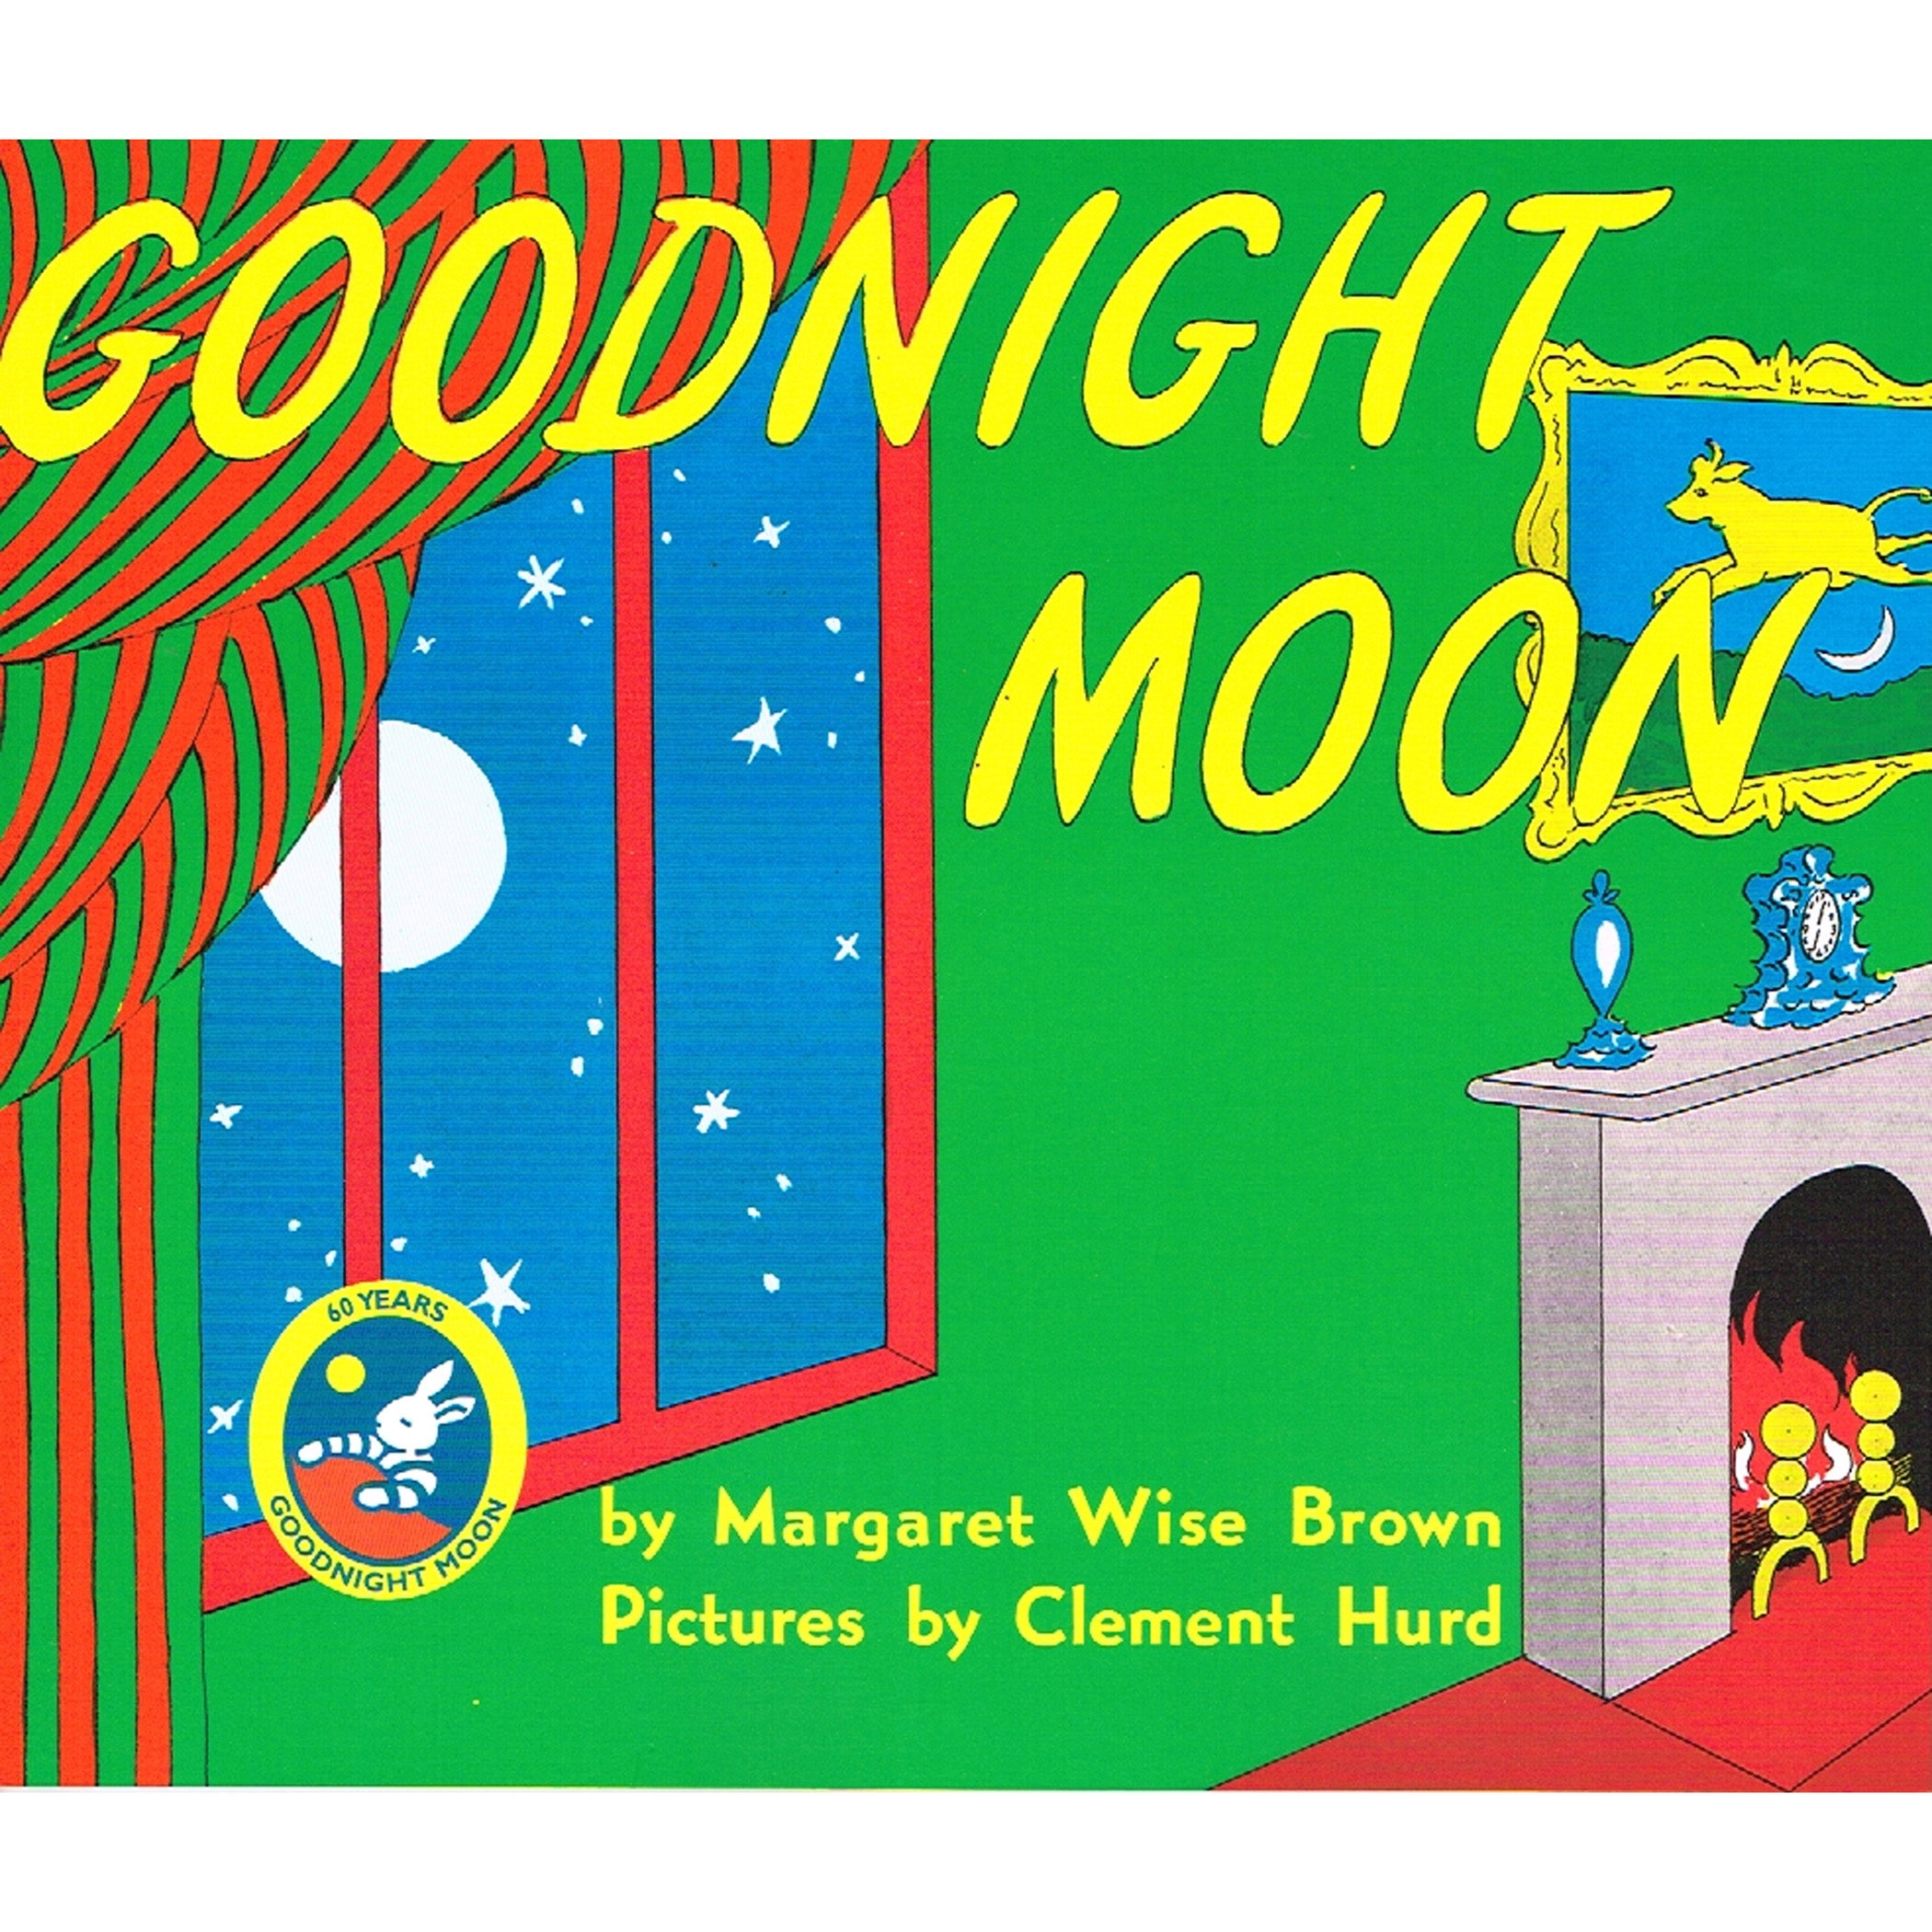 Goodnight Moon Paperback - Kiddren